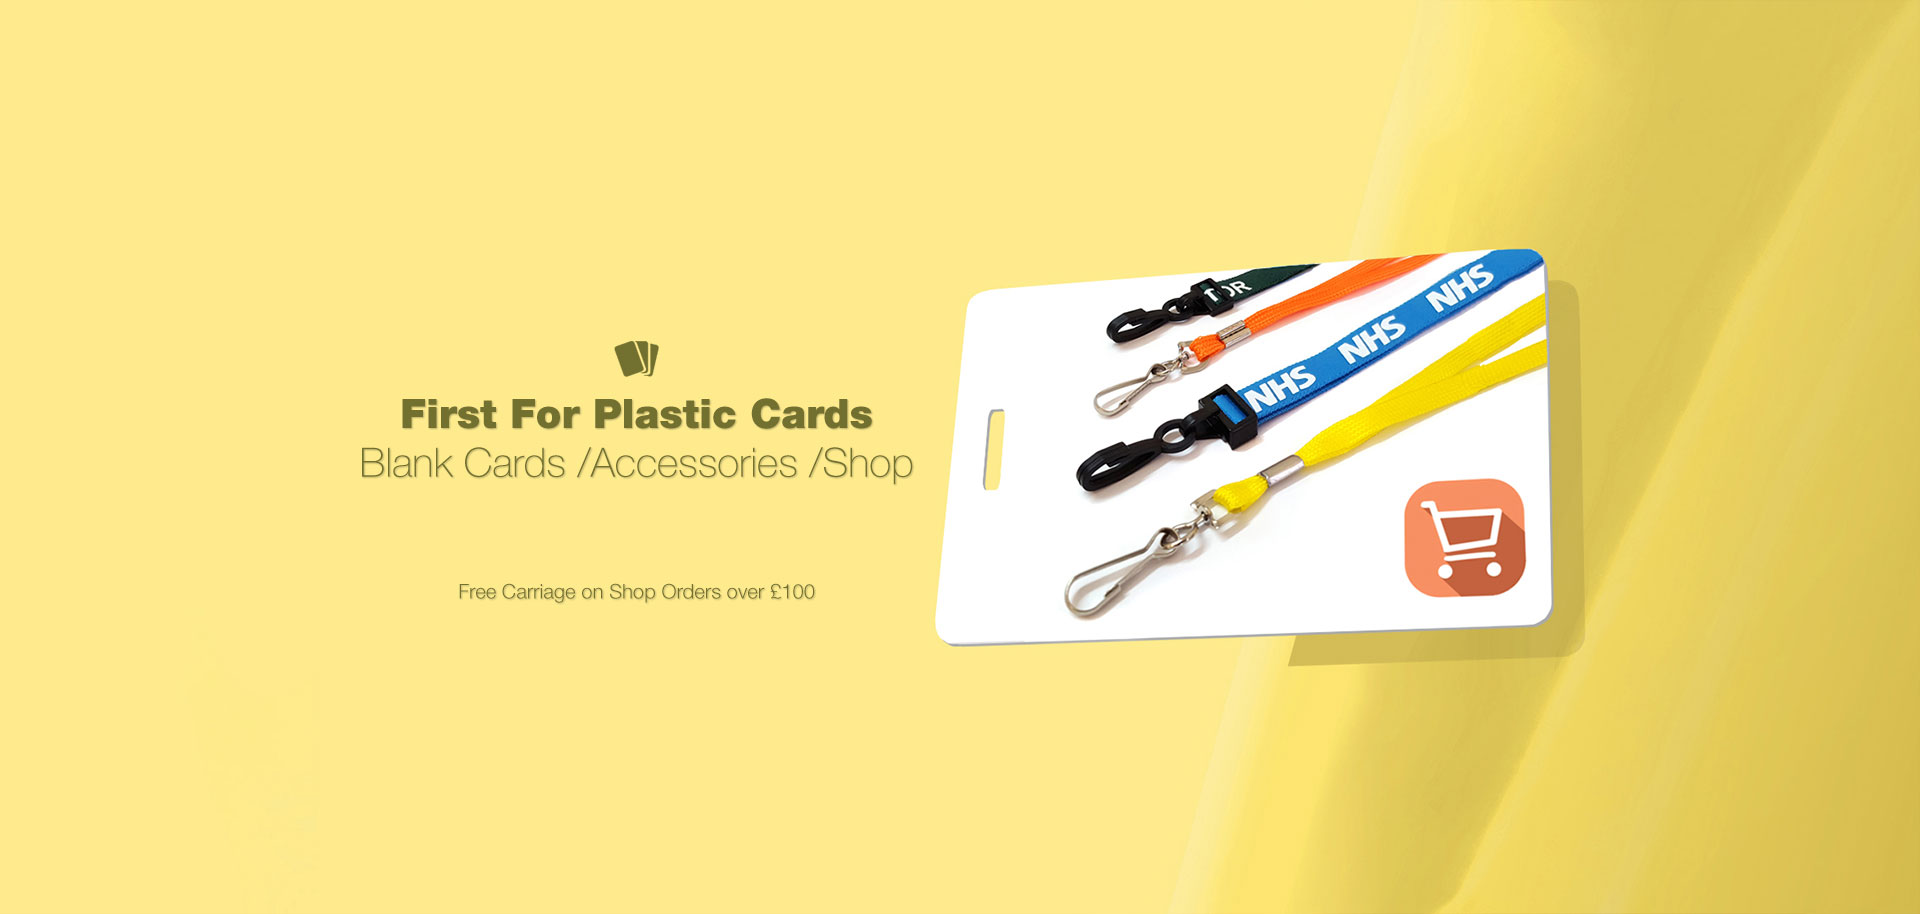 Blank Plastic Cards and Accessories Shop - Free Carriage on Shop Orders over £100